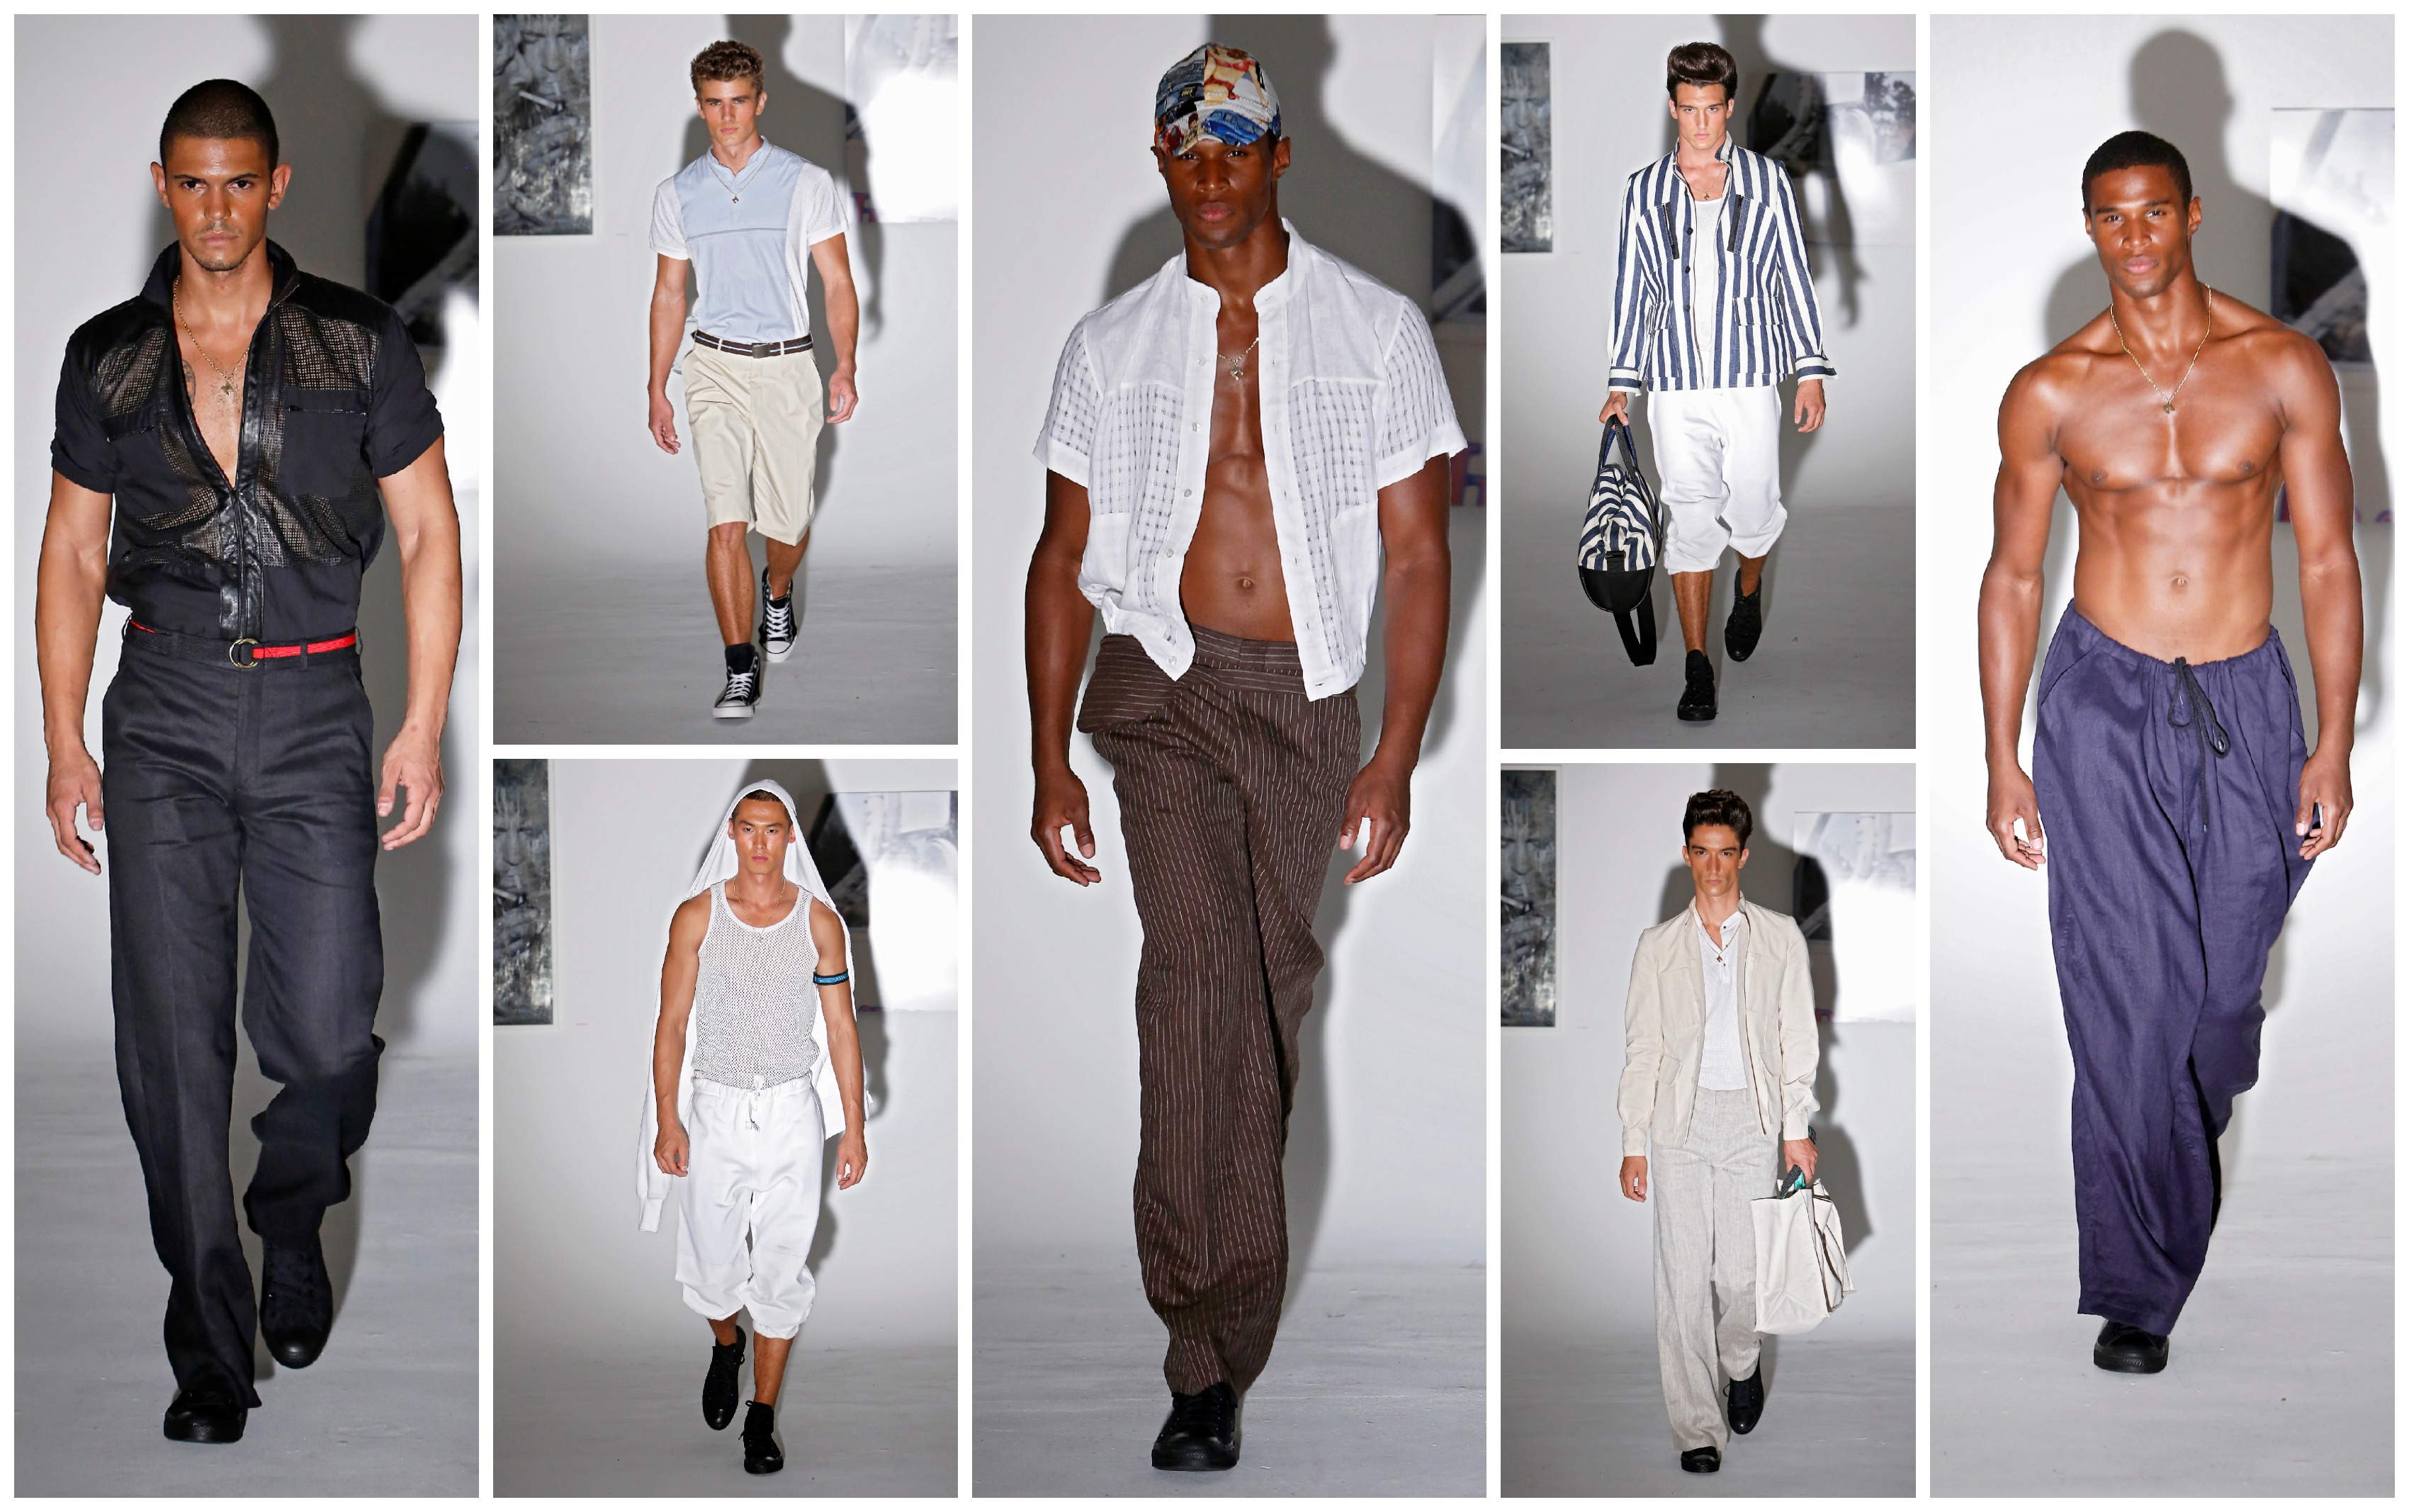 Martin Keehn Conveys Classic American Style at New York Fashion Week Menswear Presentation